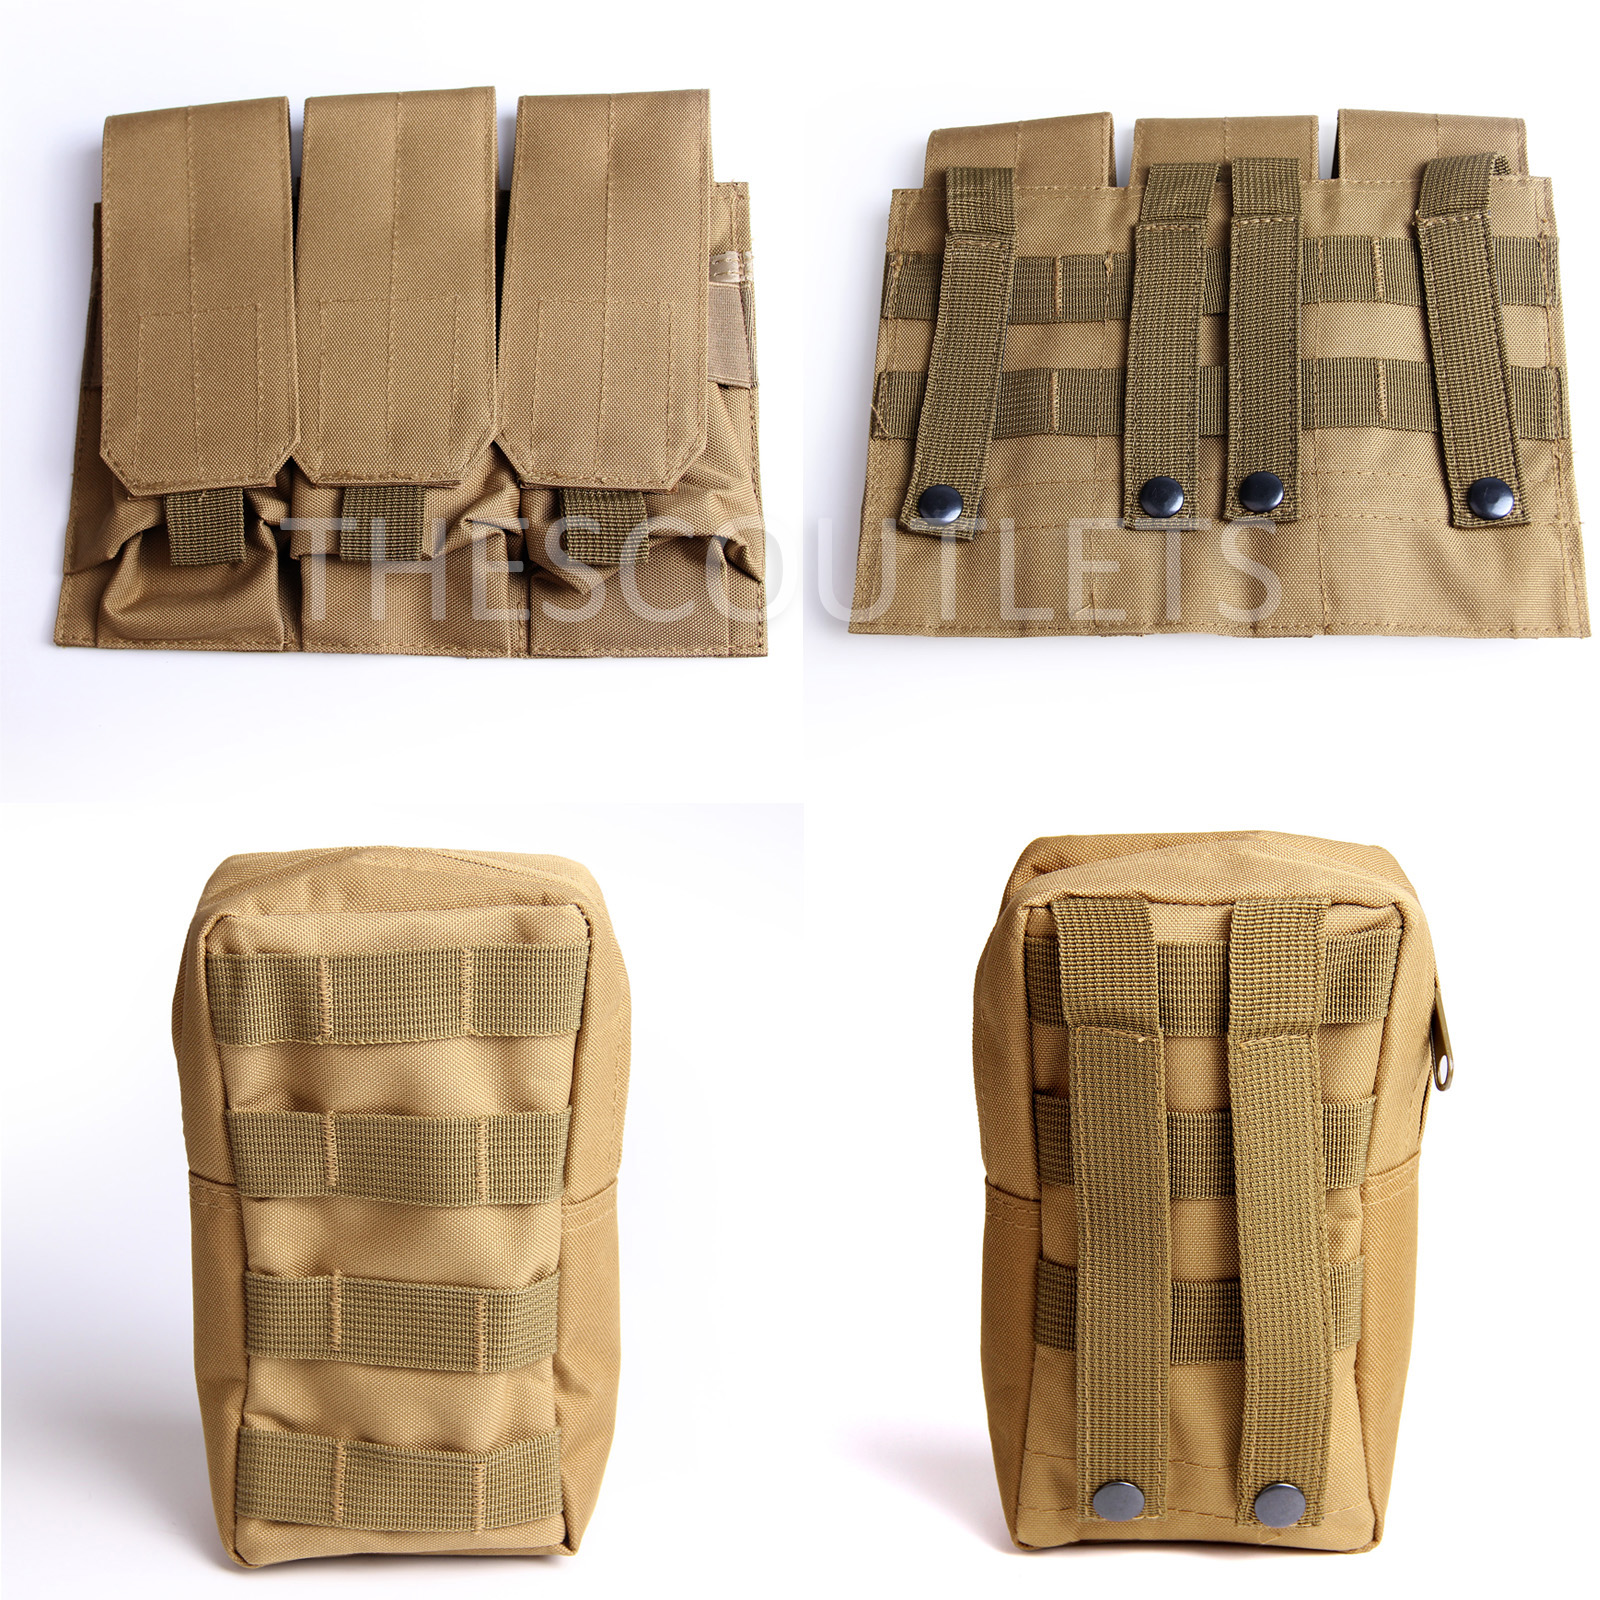 Military-Tactical-Paintball-Army-Molle-Carrier-Adjustable-Airsoft-Combat-Vest thumbnail 26